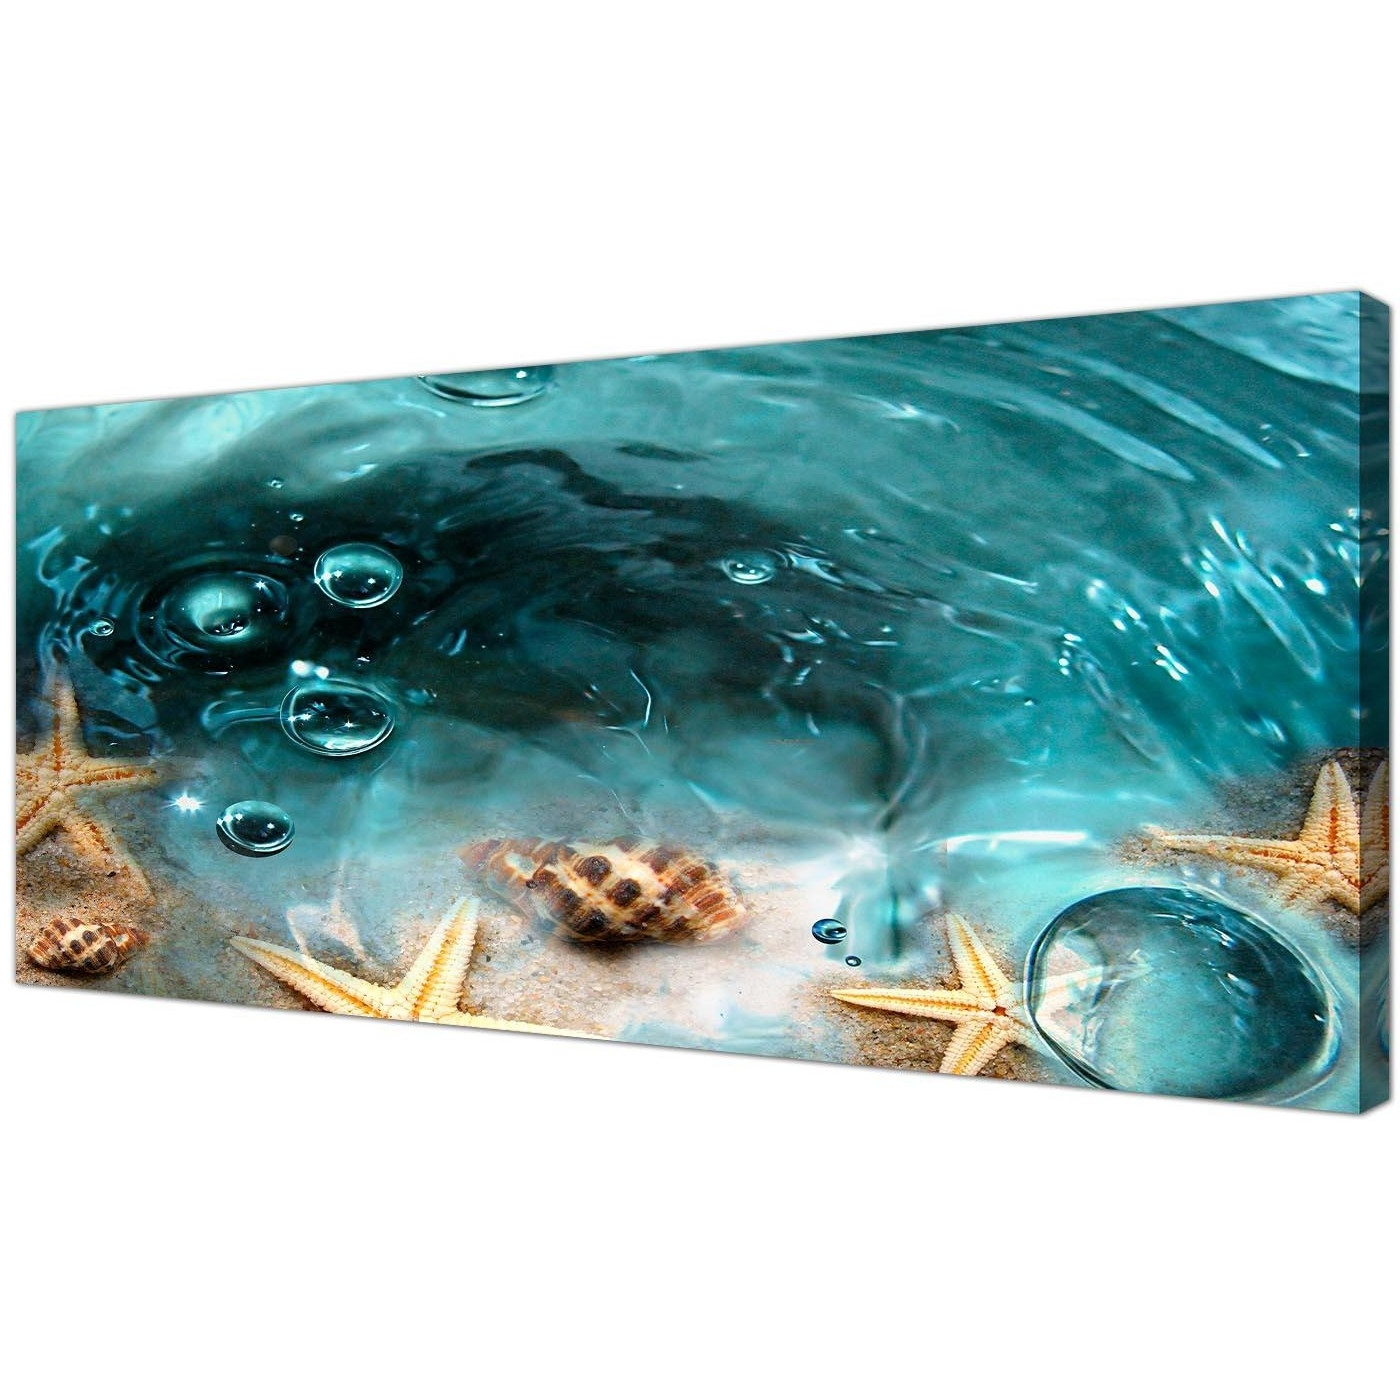 Most Recently Released Bathroom Canvas Wall Art In Teal Seaside Starfish In Sand Bathroom Wall Art (View 12 of 15)